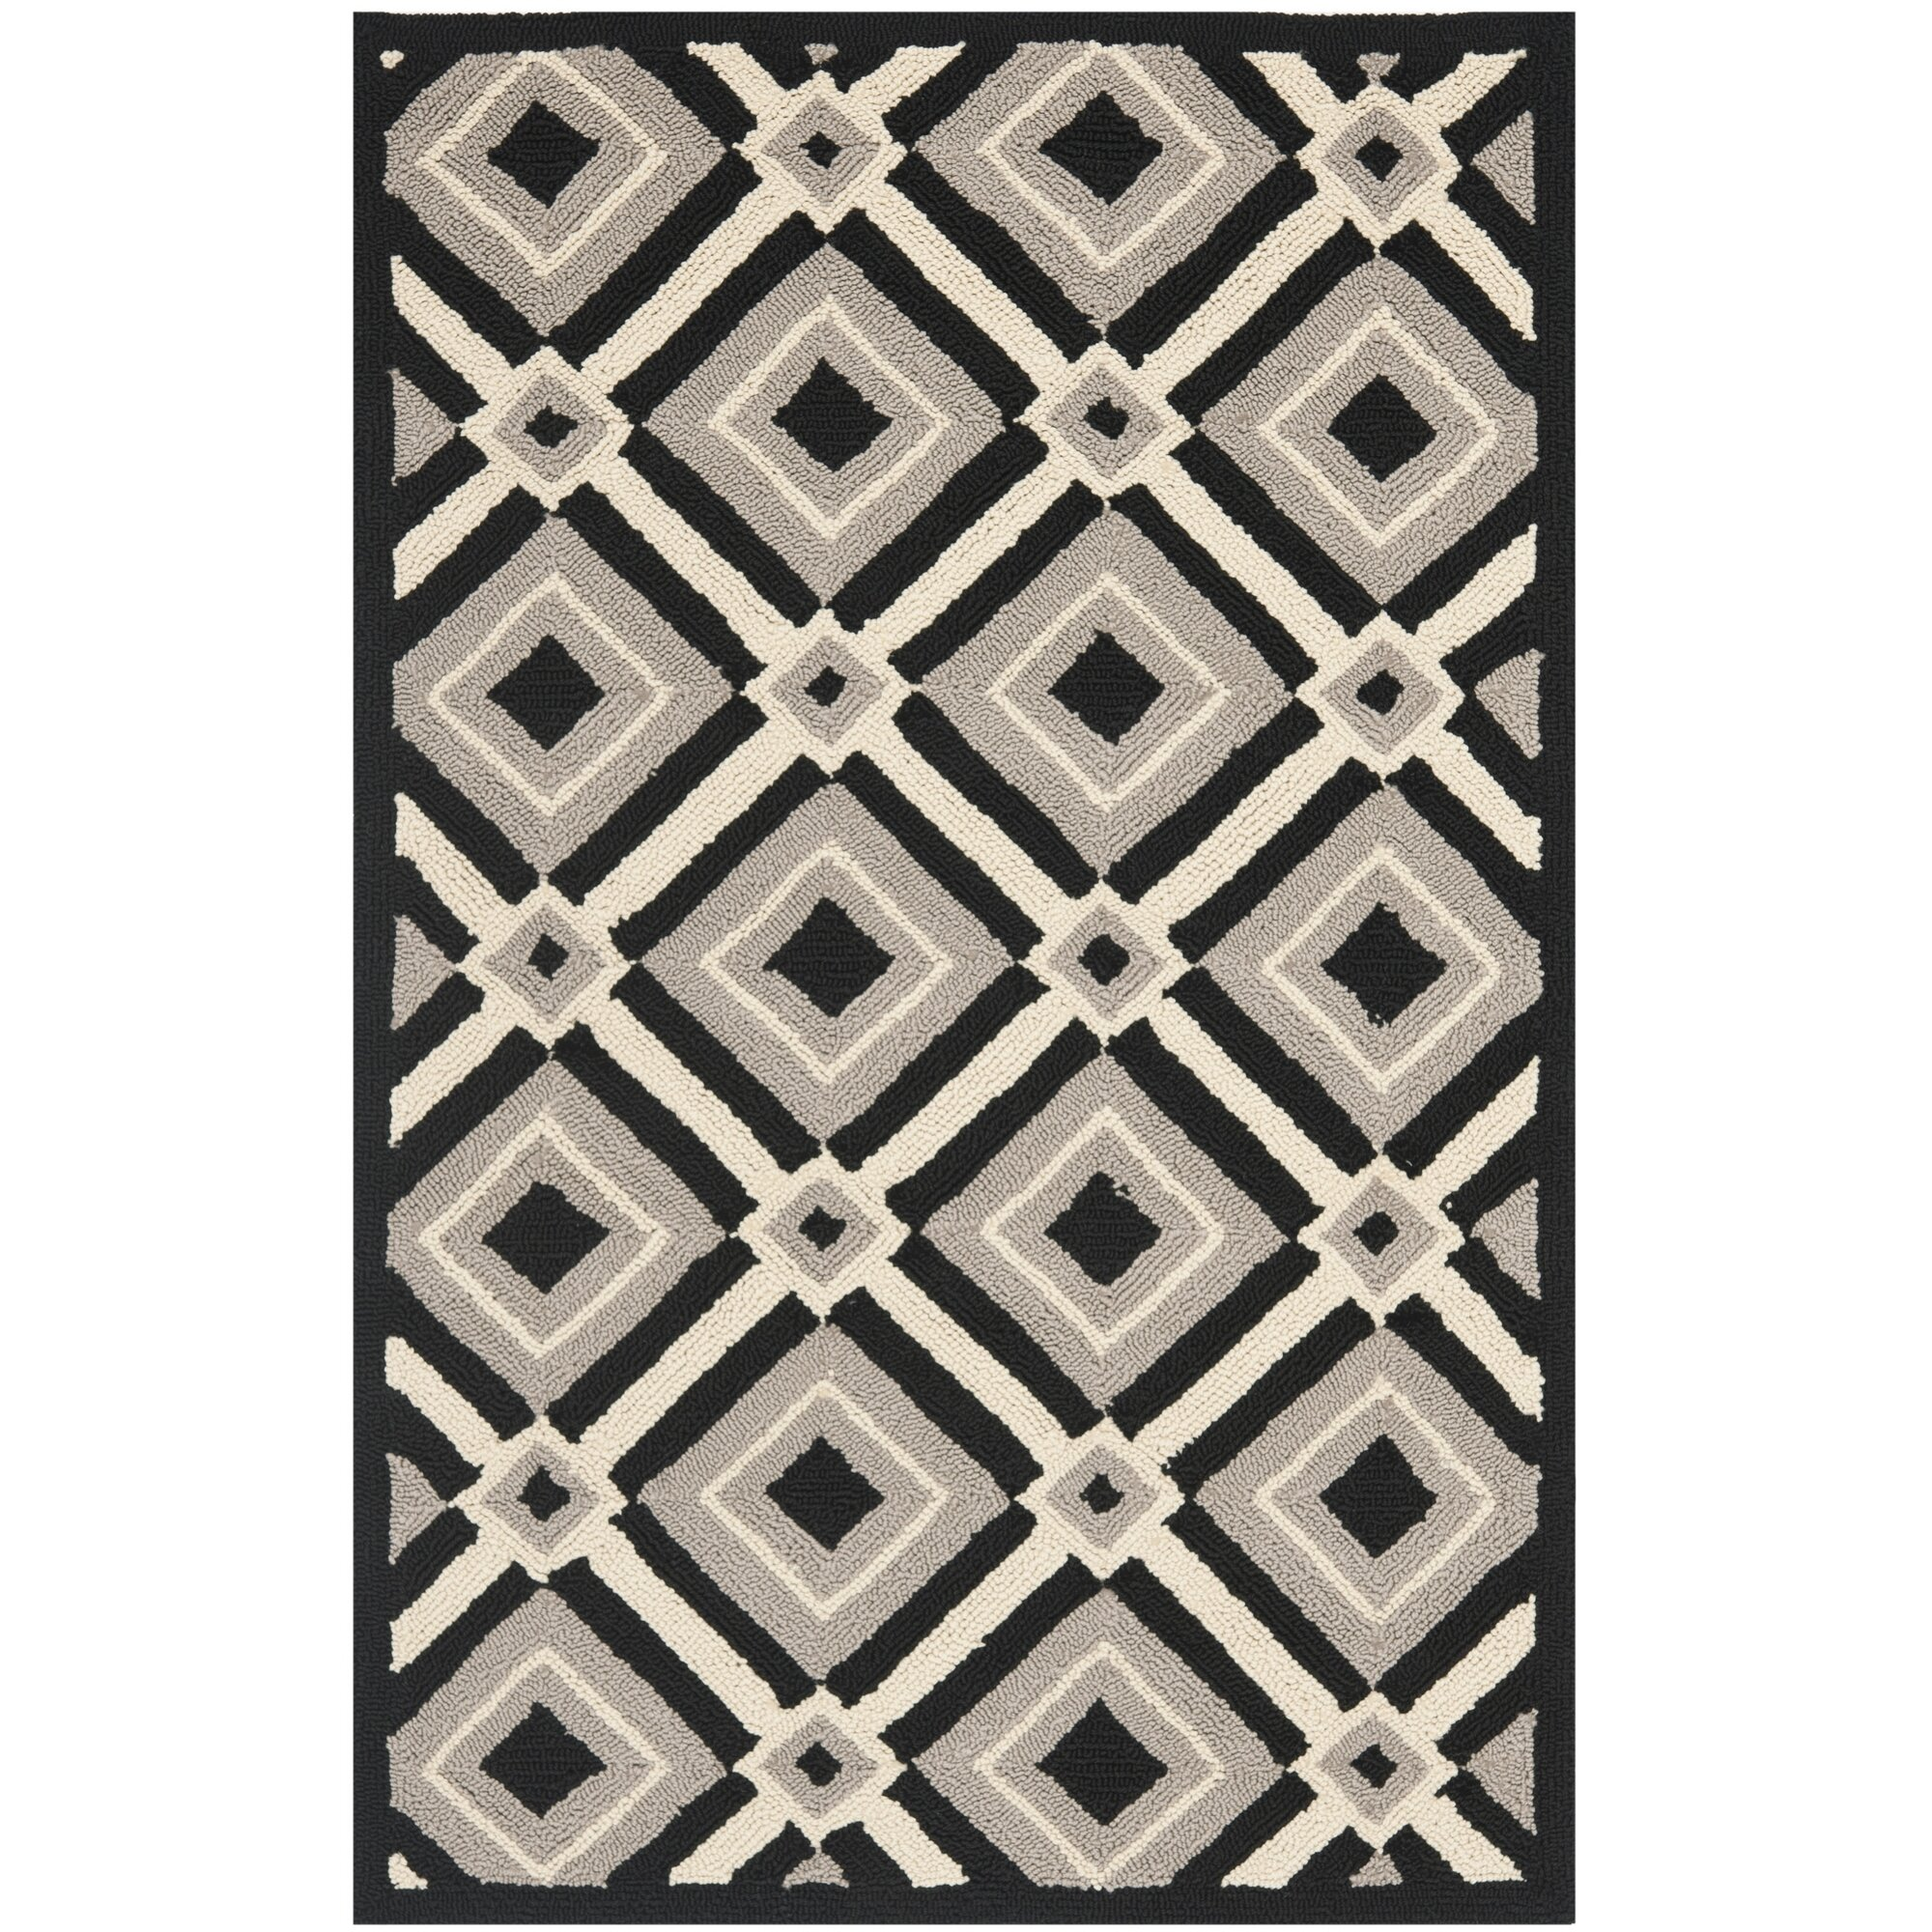 Black And Grey Rugs: Mercer41 Margate Black/Grey Outdoor Area Rug & Reviews